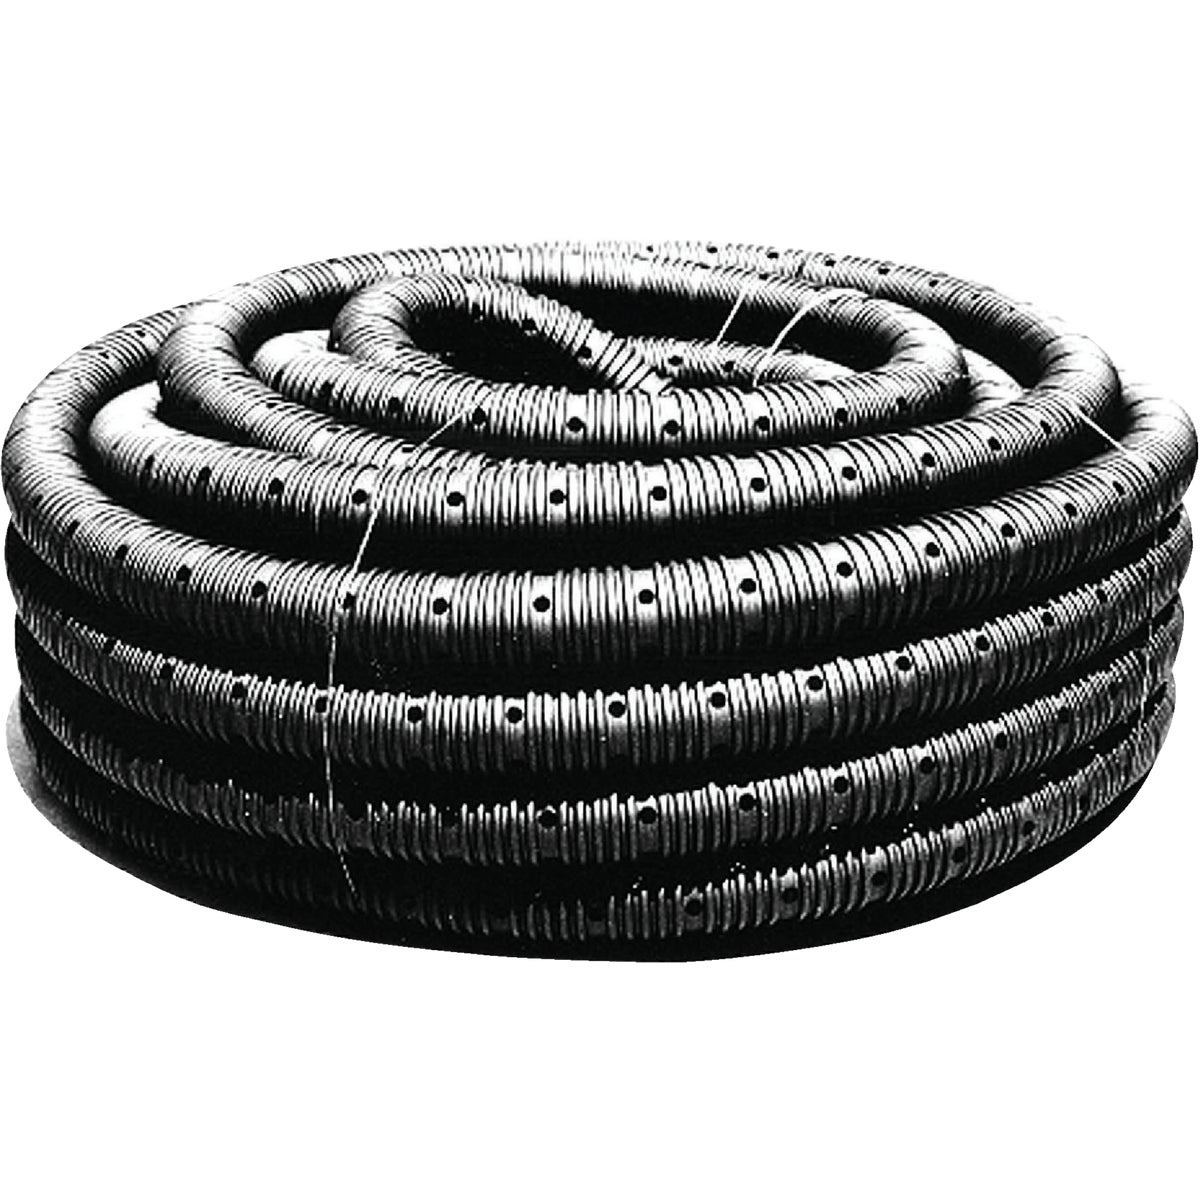 "4""X100' SEPTIC PIPE - 4020100 by Advanced Drainage Sy"